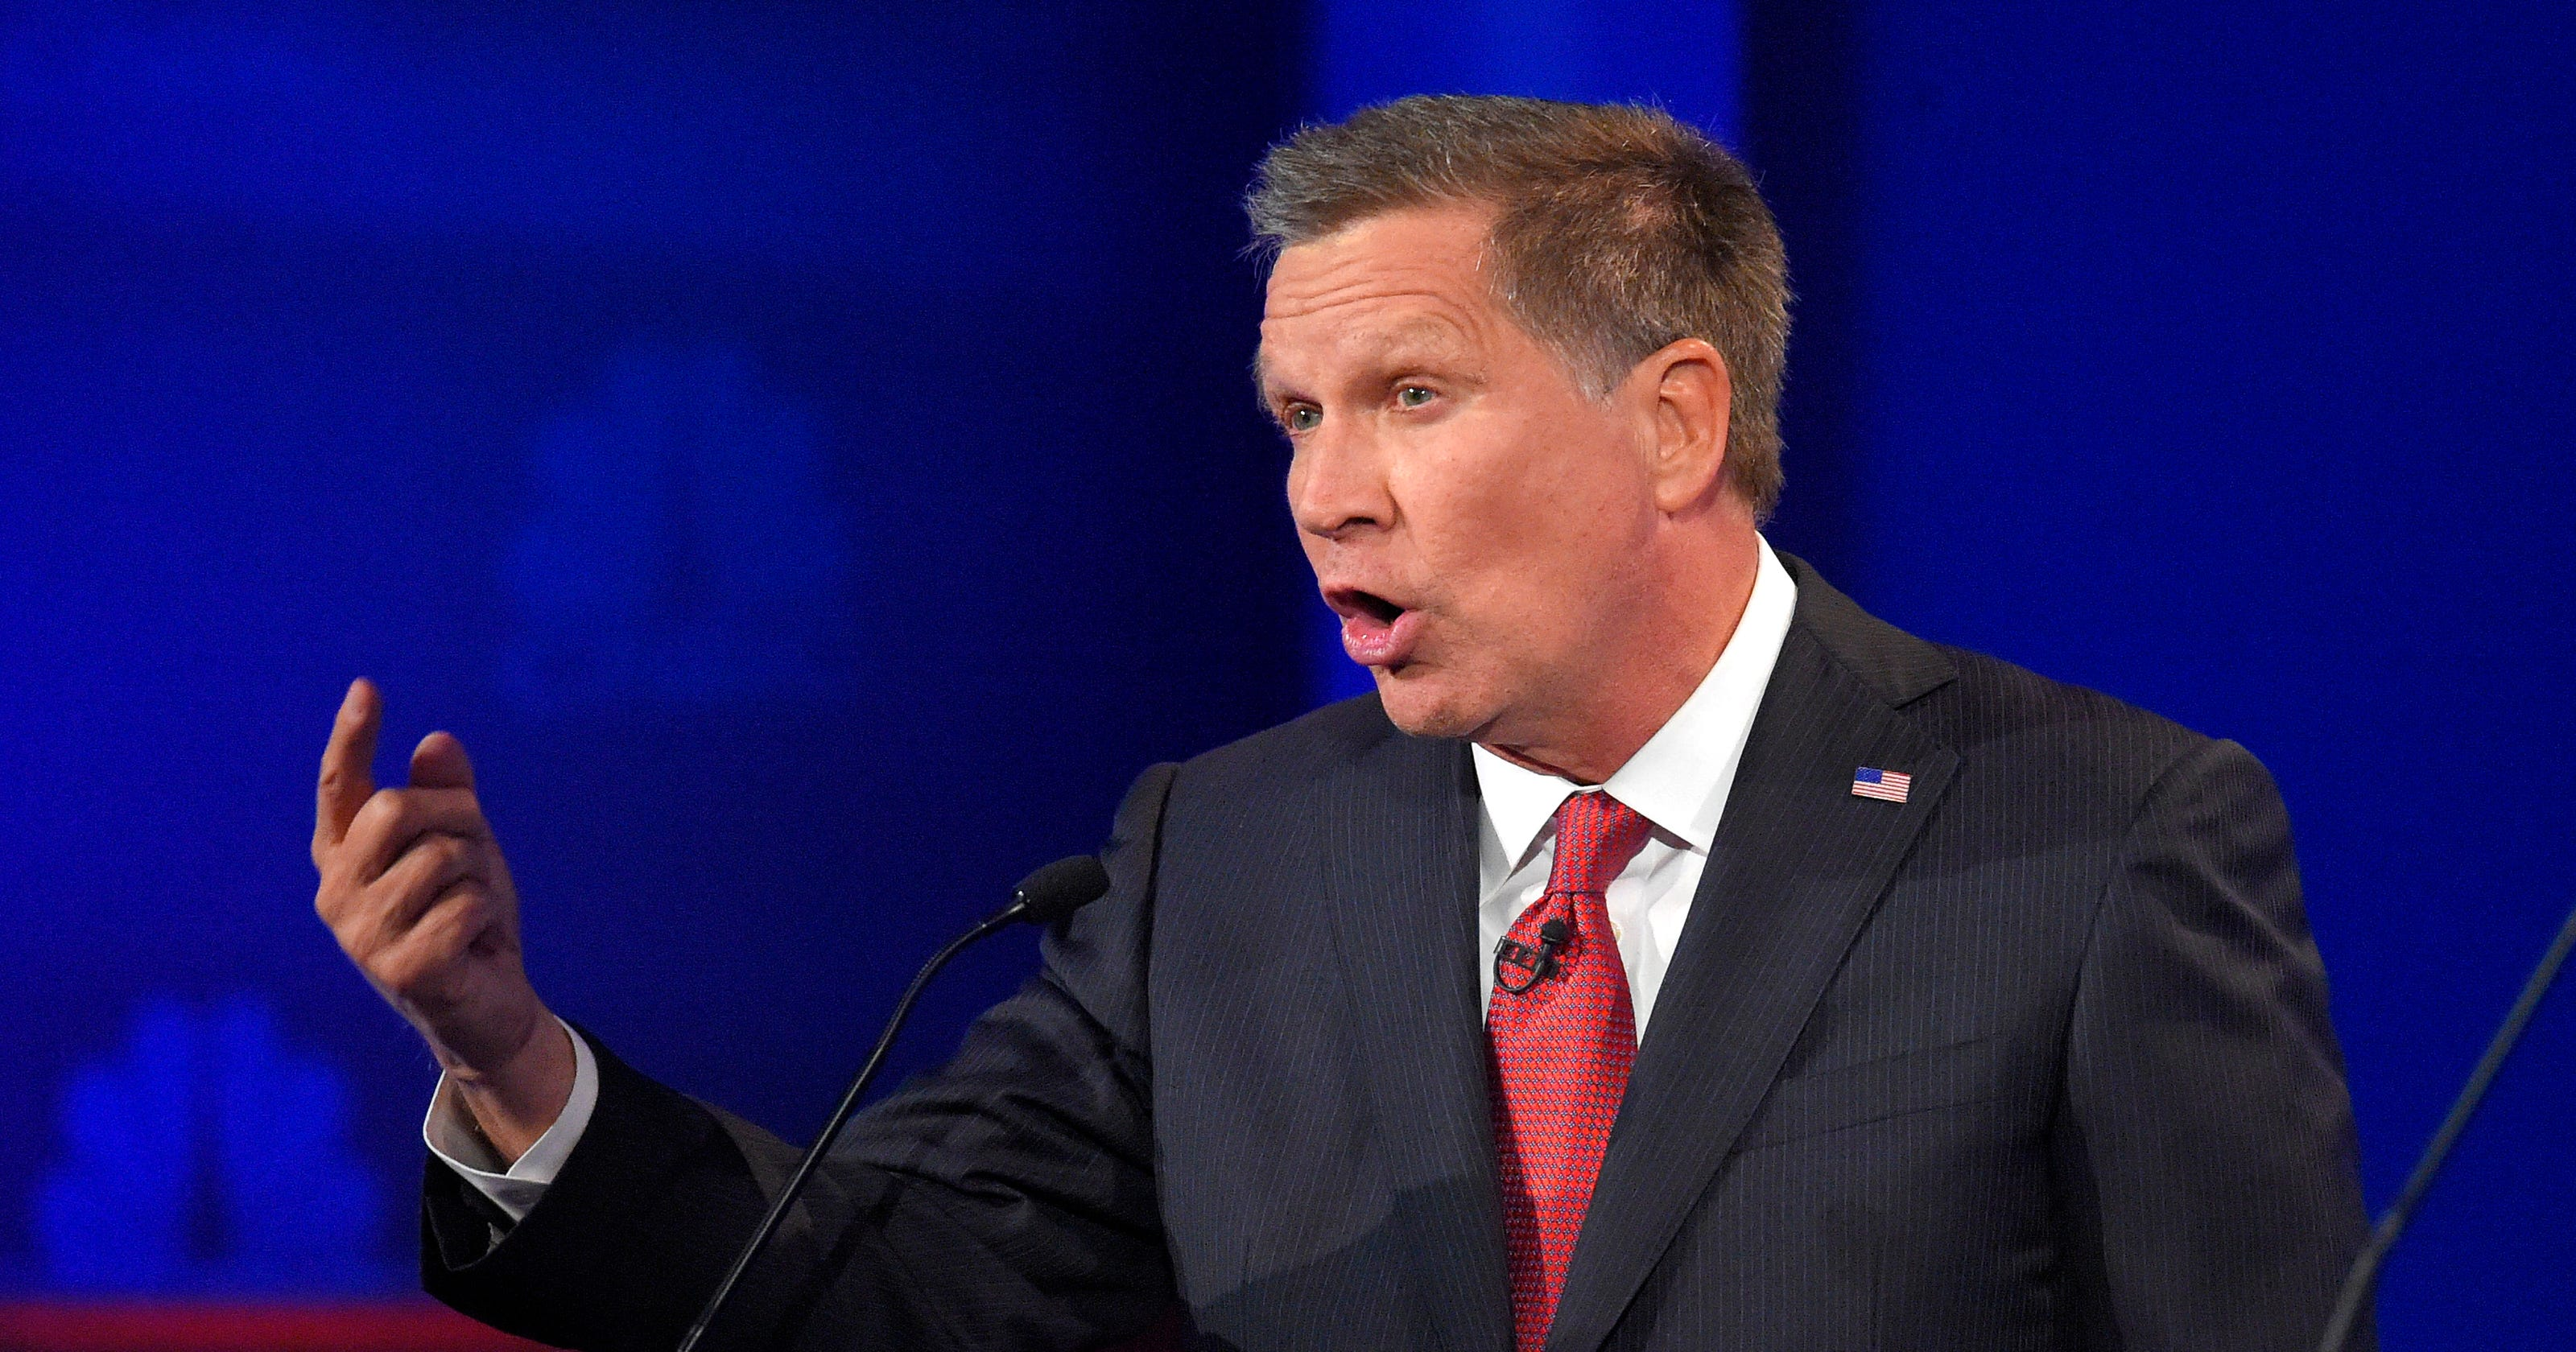 John Kasich clashes with Donald Trump in CNBC's GOP debate